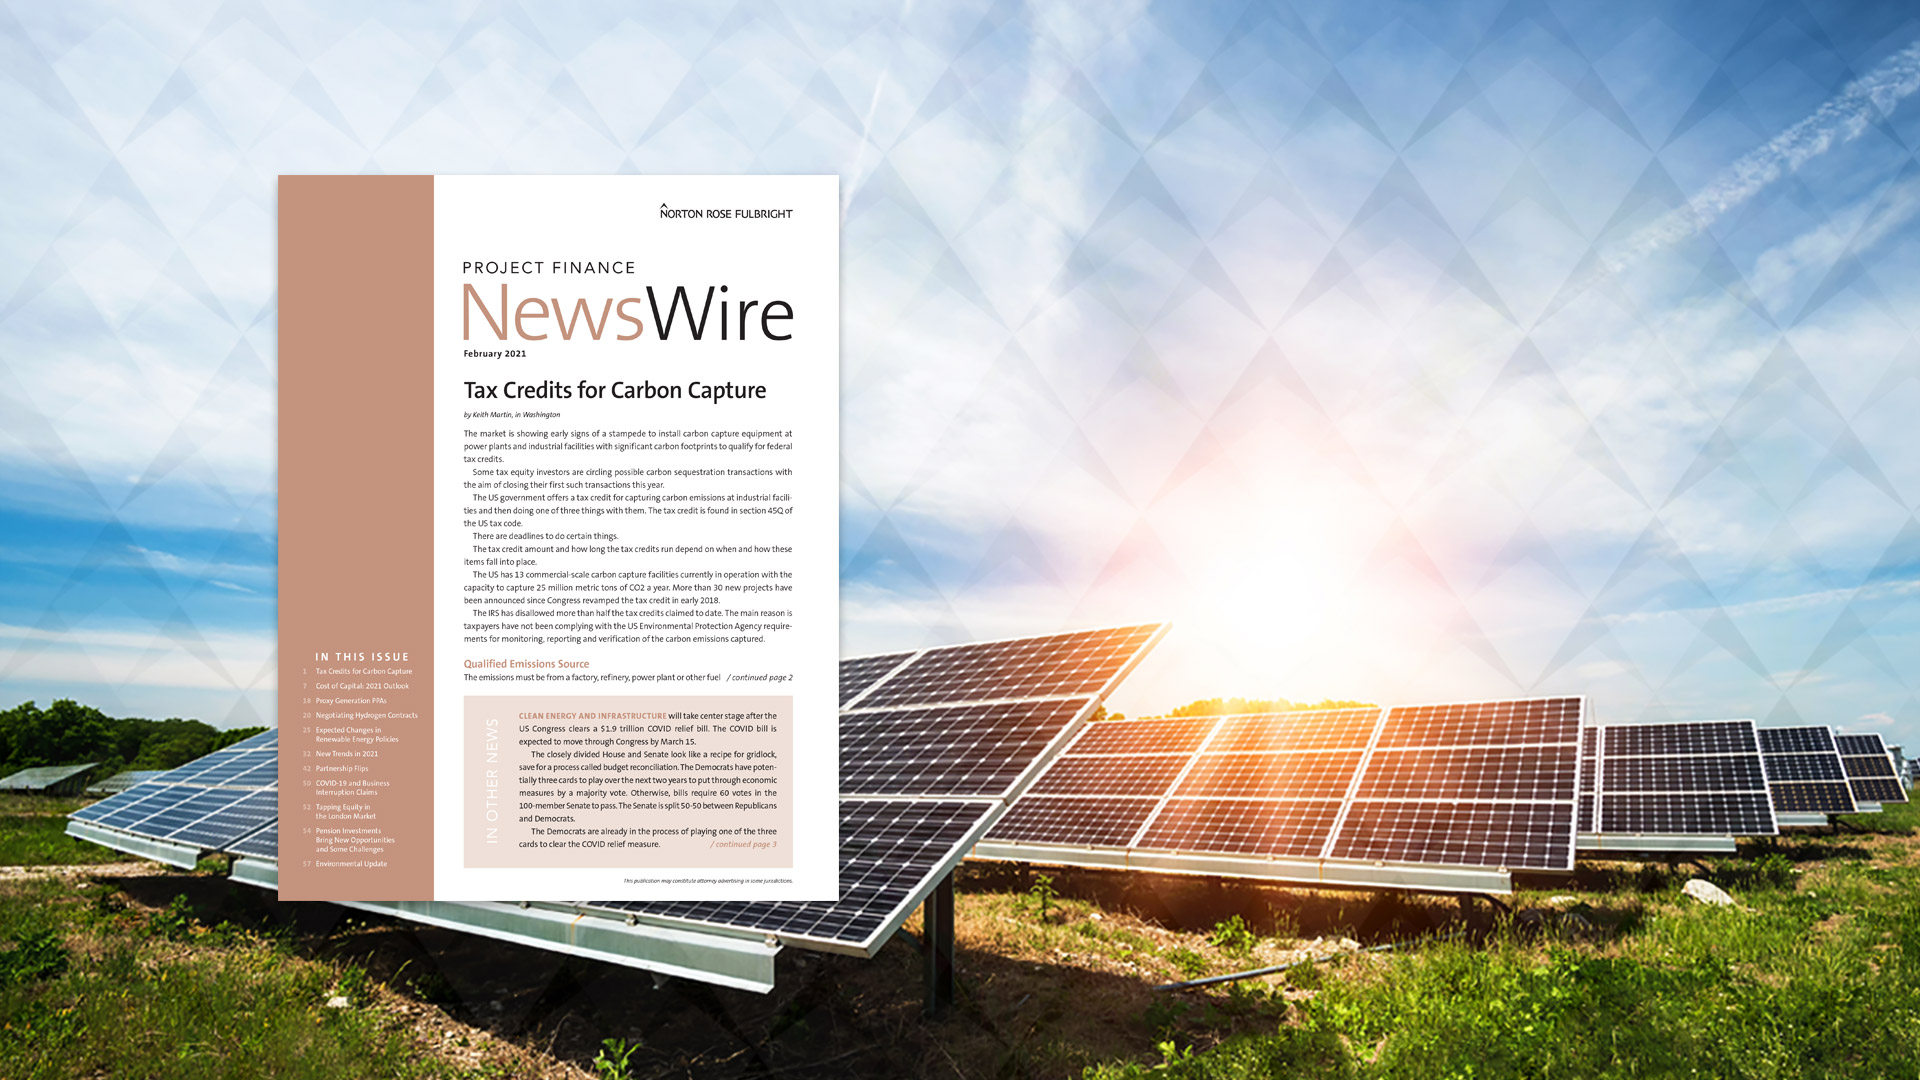 Download Norton Rose Fulbright's Project Finance NewsWire